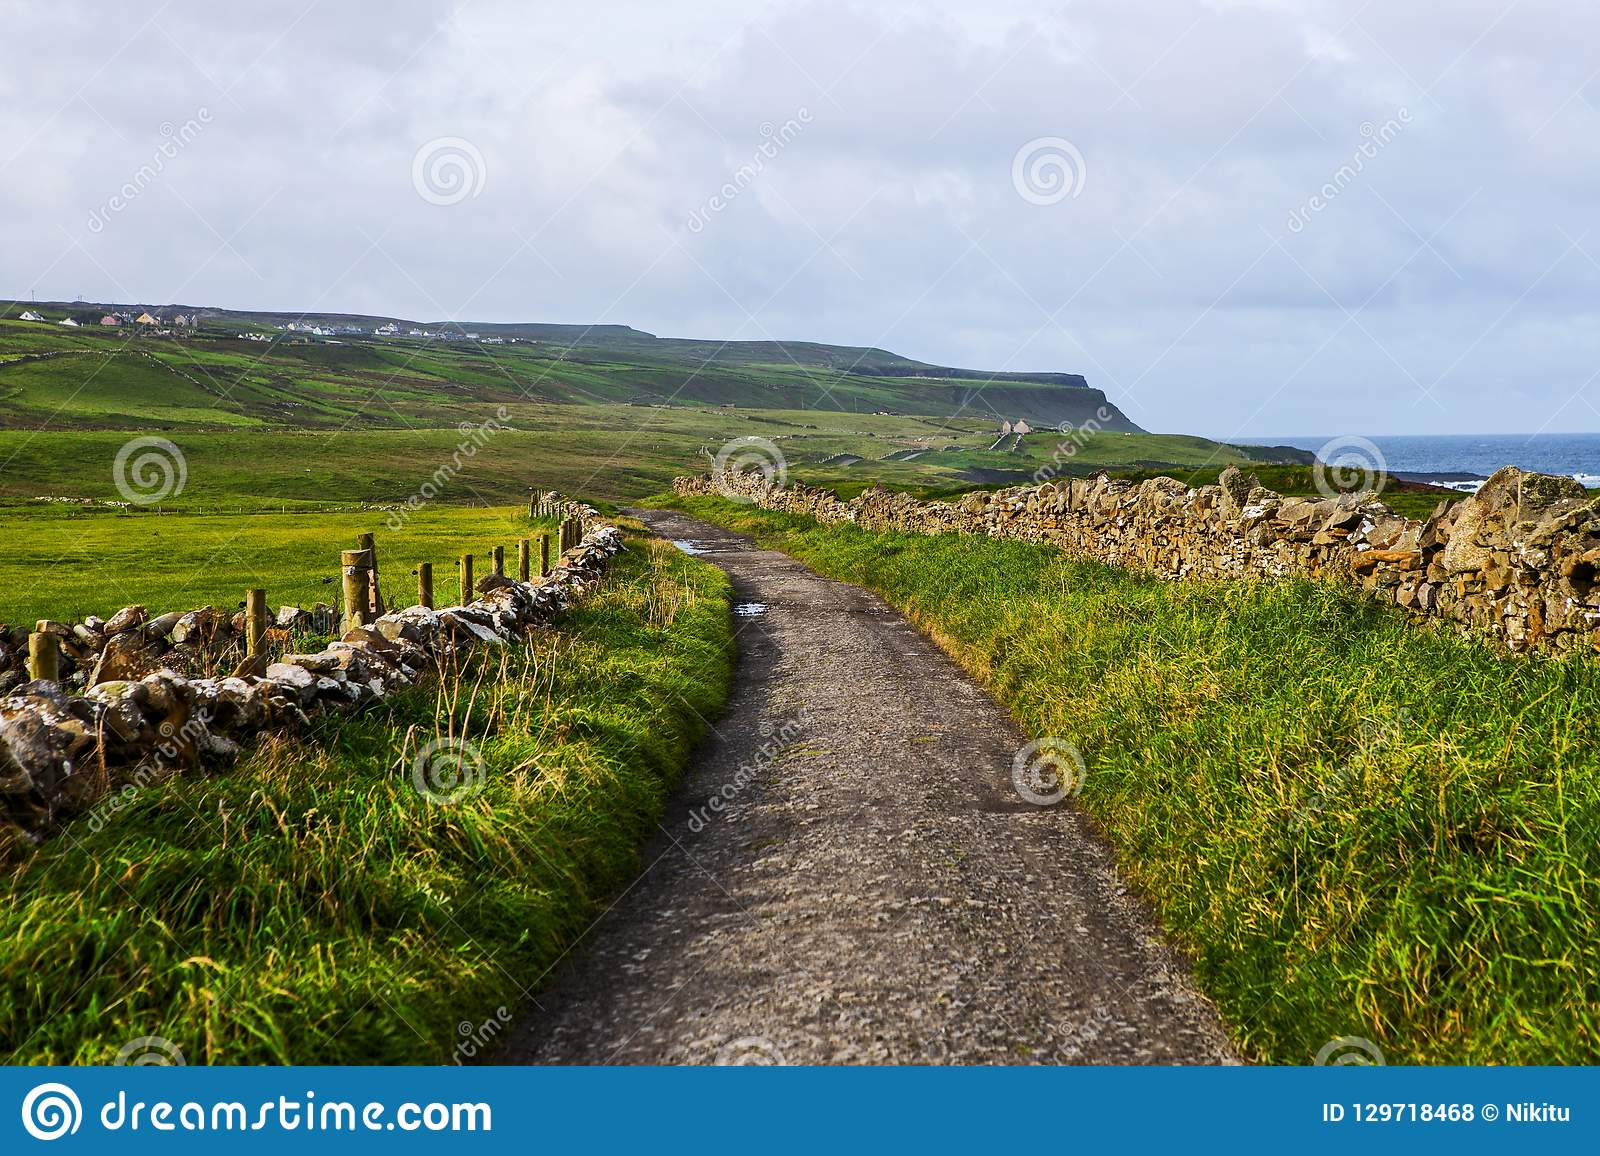 Small pedestrian path at Cliffs of Moher from Doolin, Ireland